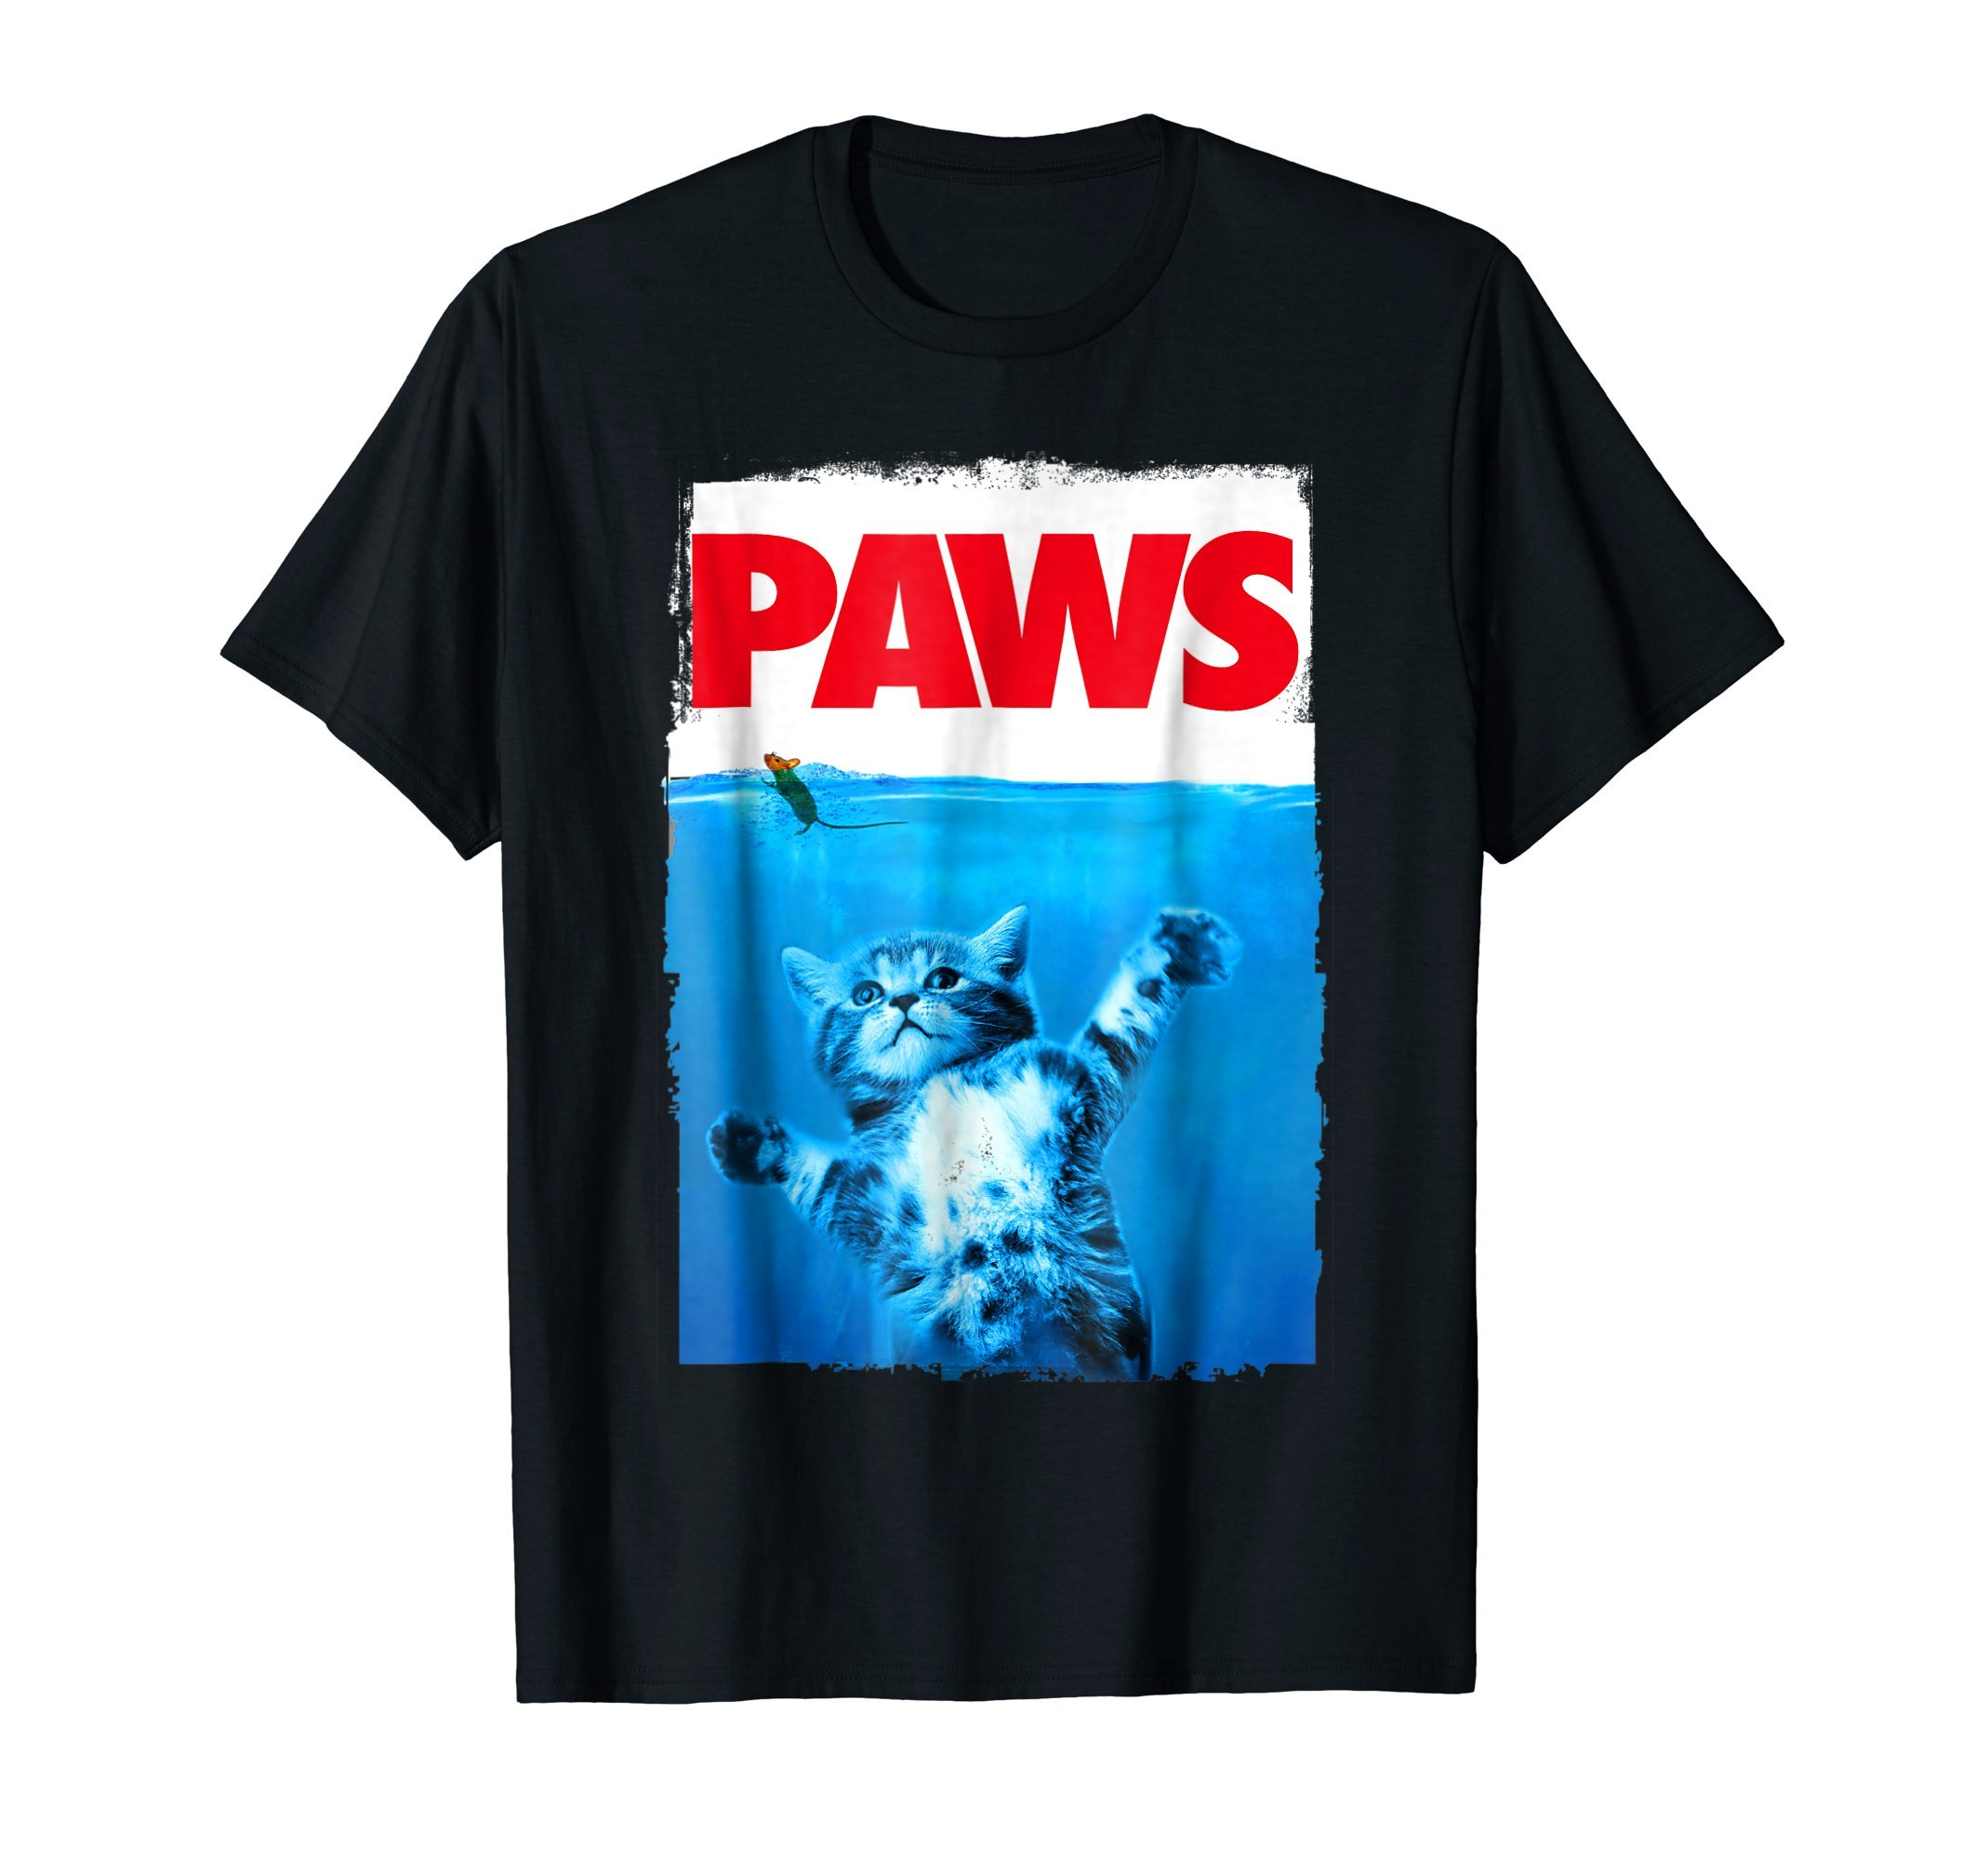 Paws Cat and Mouse T-shirt, Cute Funny Cat Lover Shirt